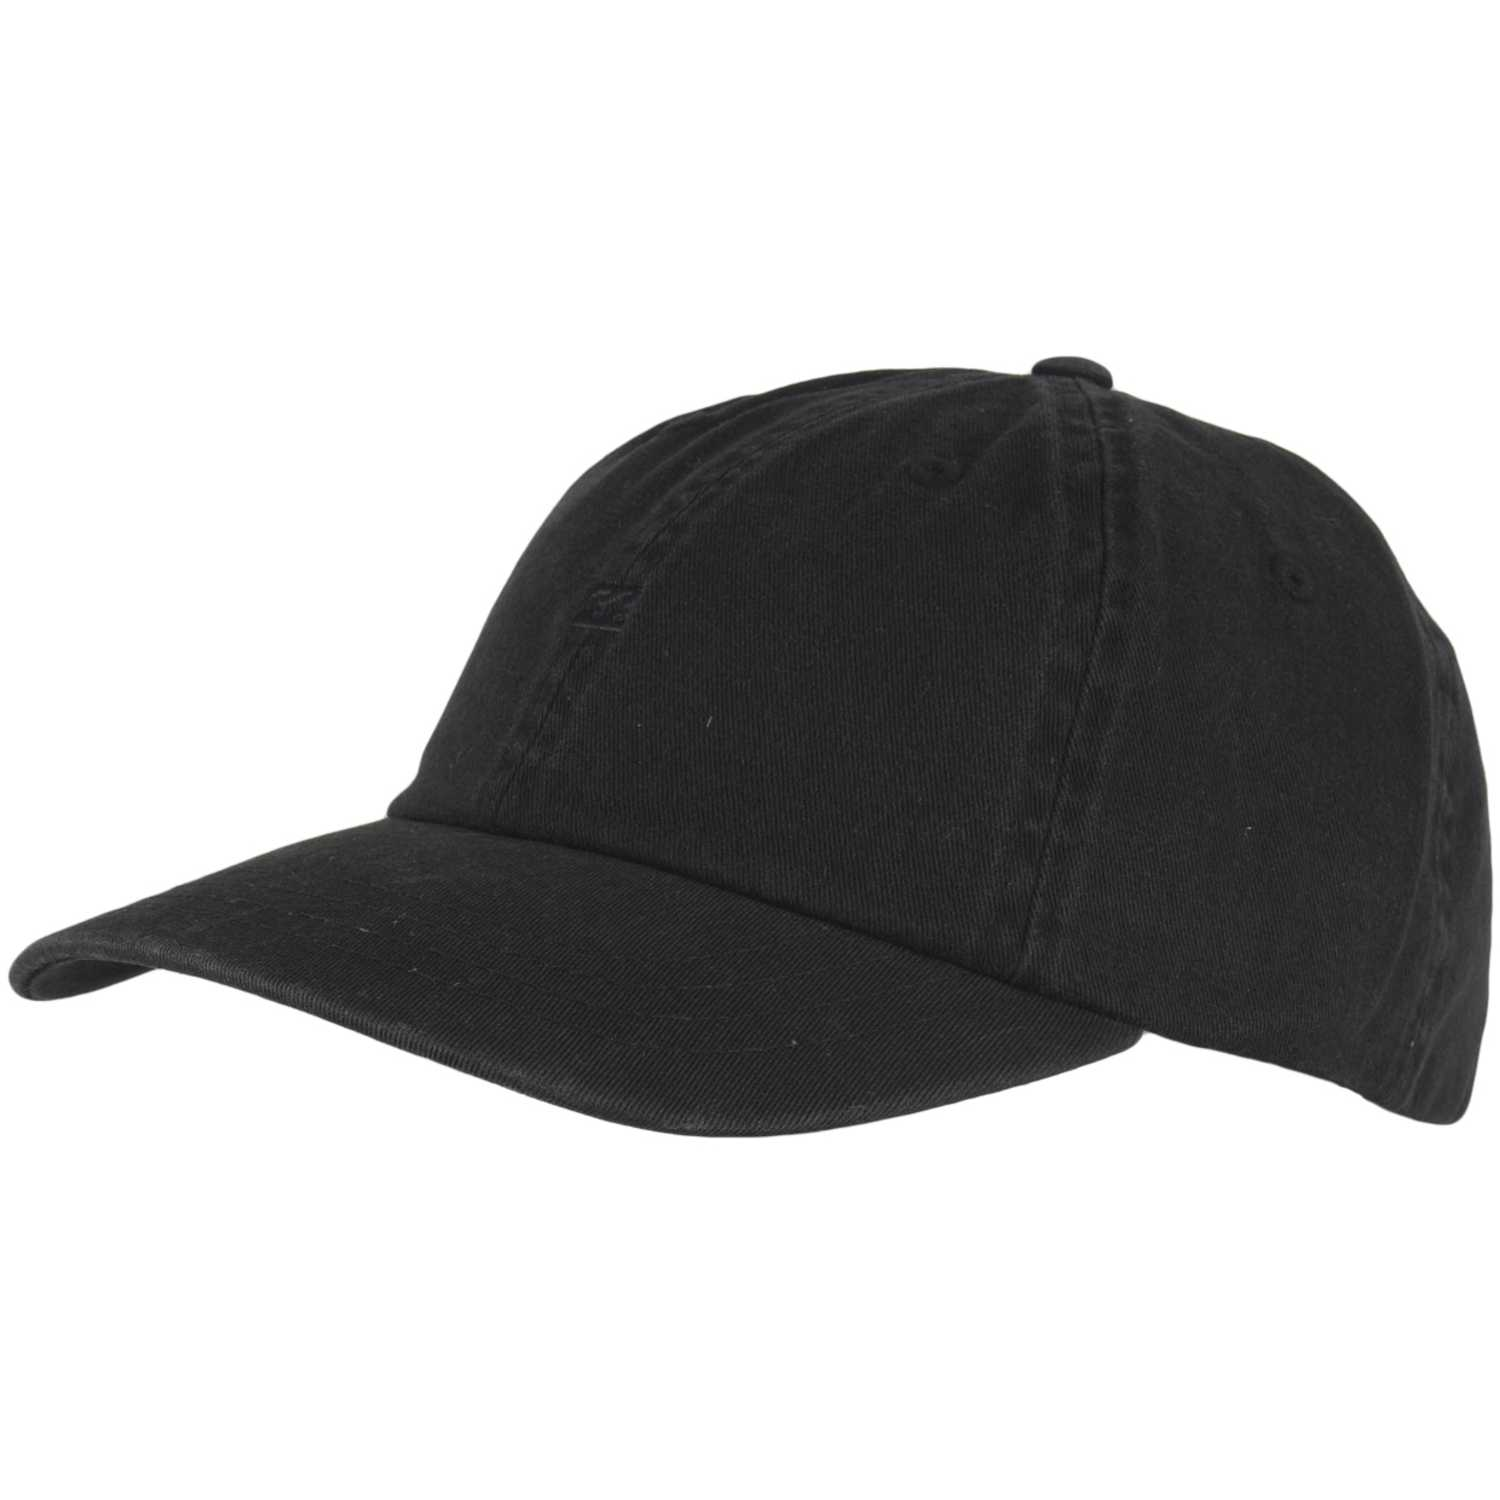 Gorros de Hombre Billabong Negro all day lad cap